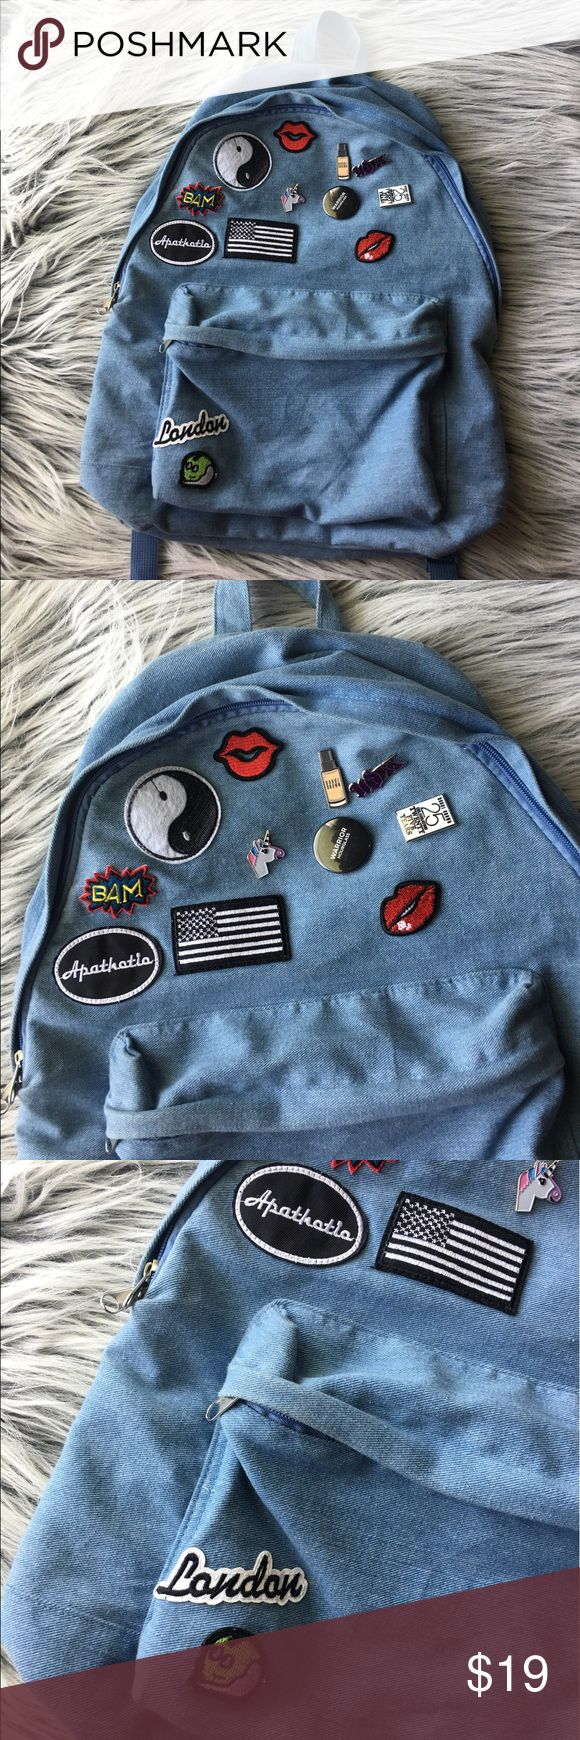 Unisex 🤖 jean backpack 🤖 with patches 🤖 EUC🤖Will ship asap🤖No exchange or returns🤖All sales are final🤖All offers are welcomed🤖 Topman Bags Backpacks